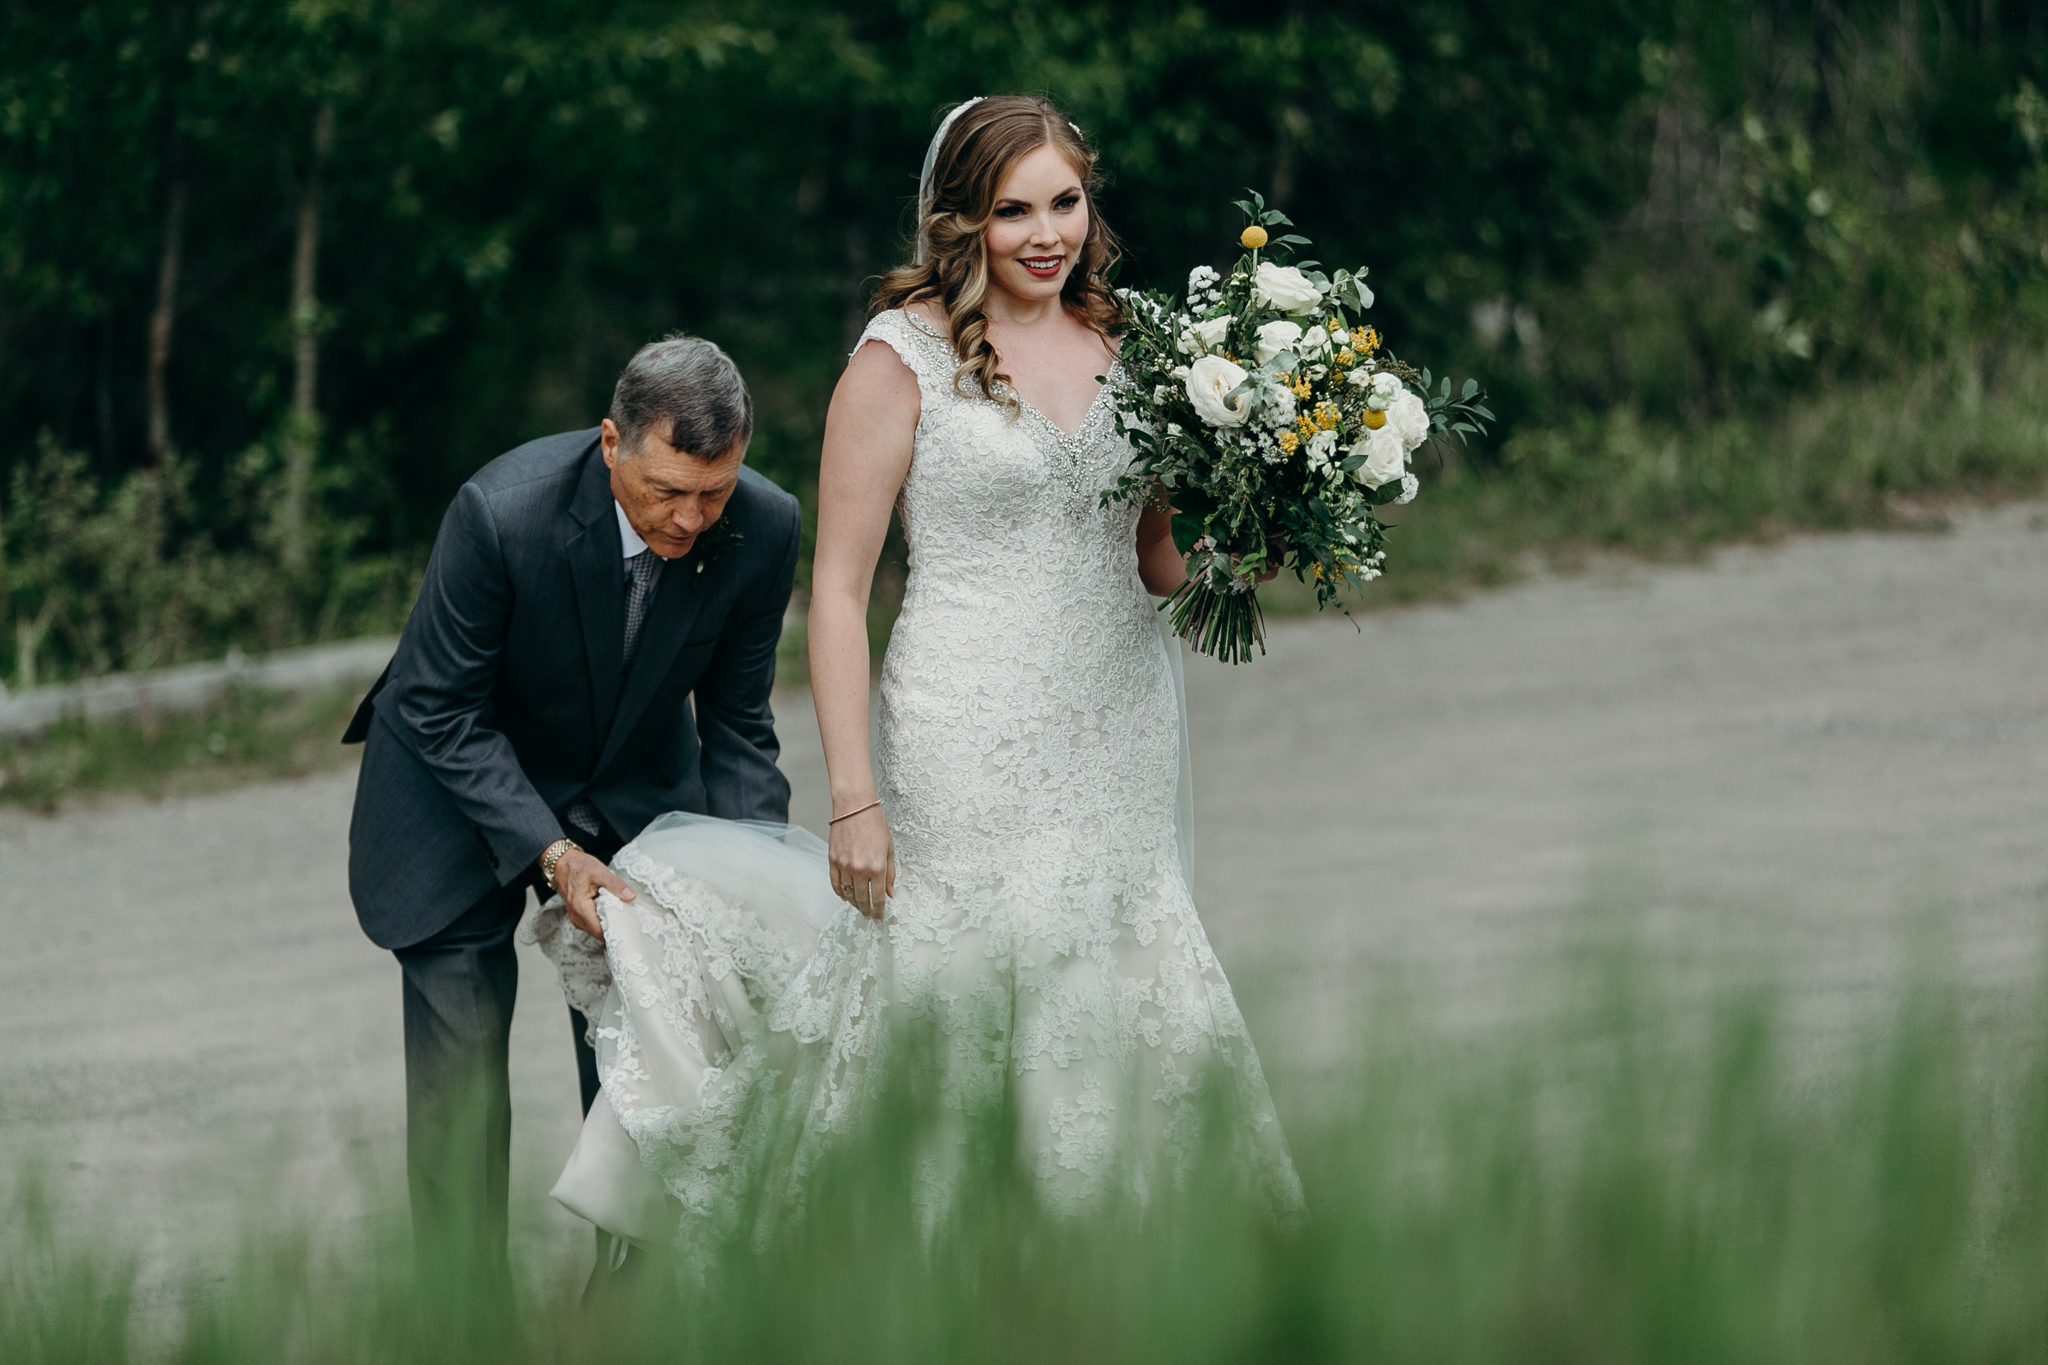 Father fixes brides dress at Silvertip Resort Canmore Alberta wedding ceremony